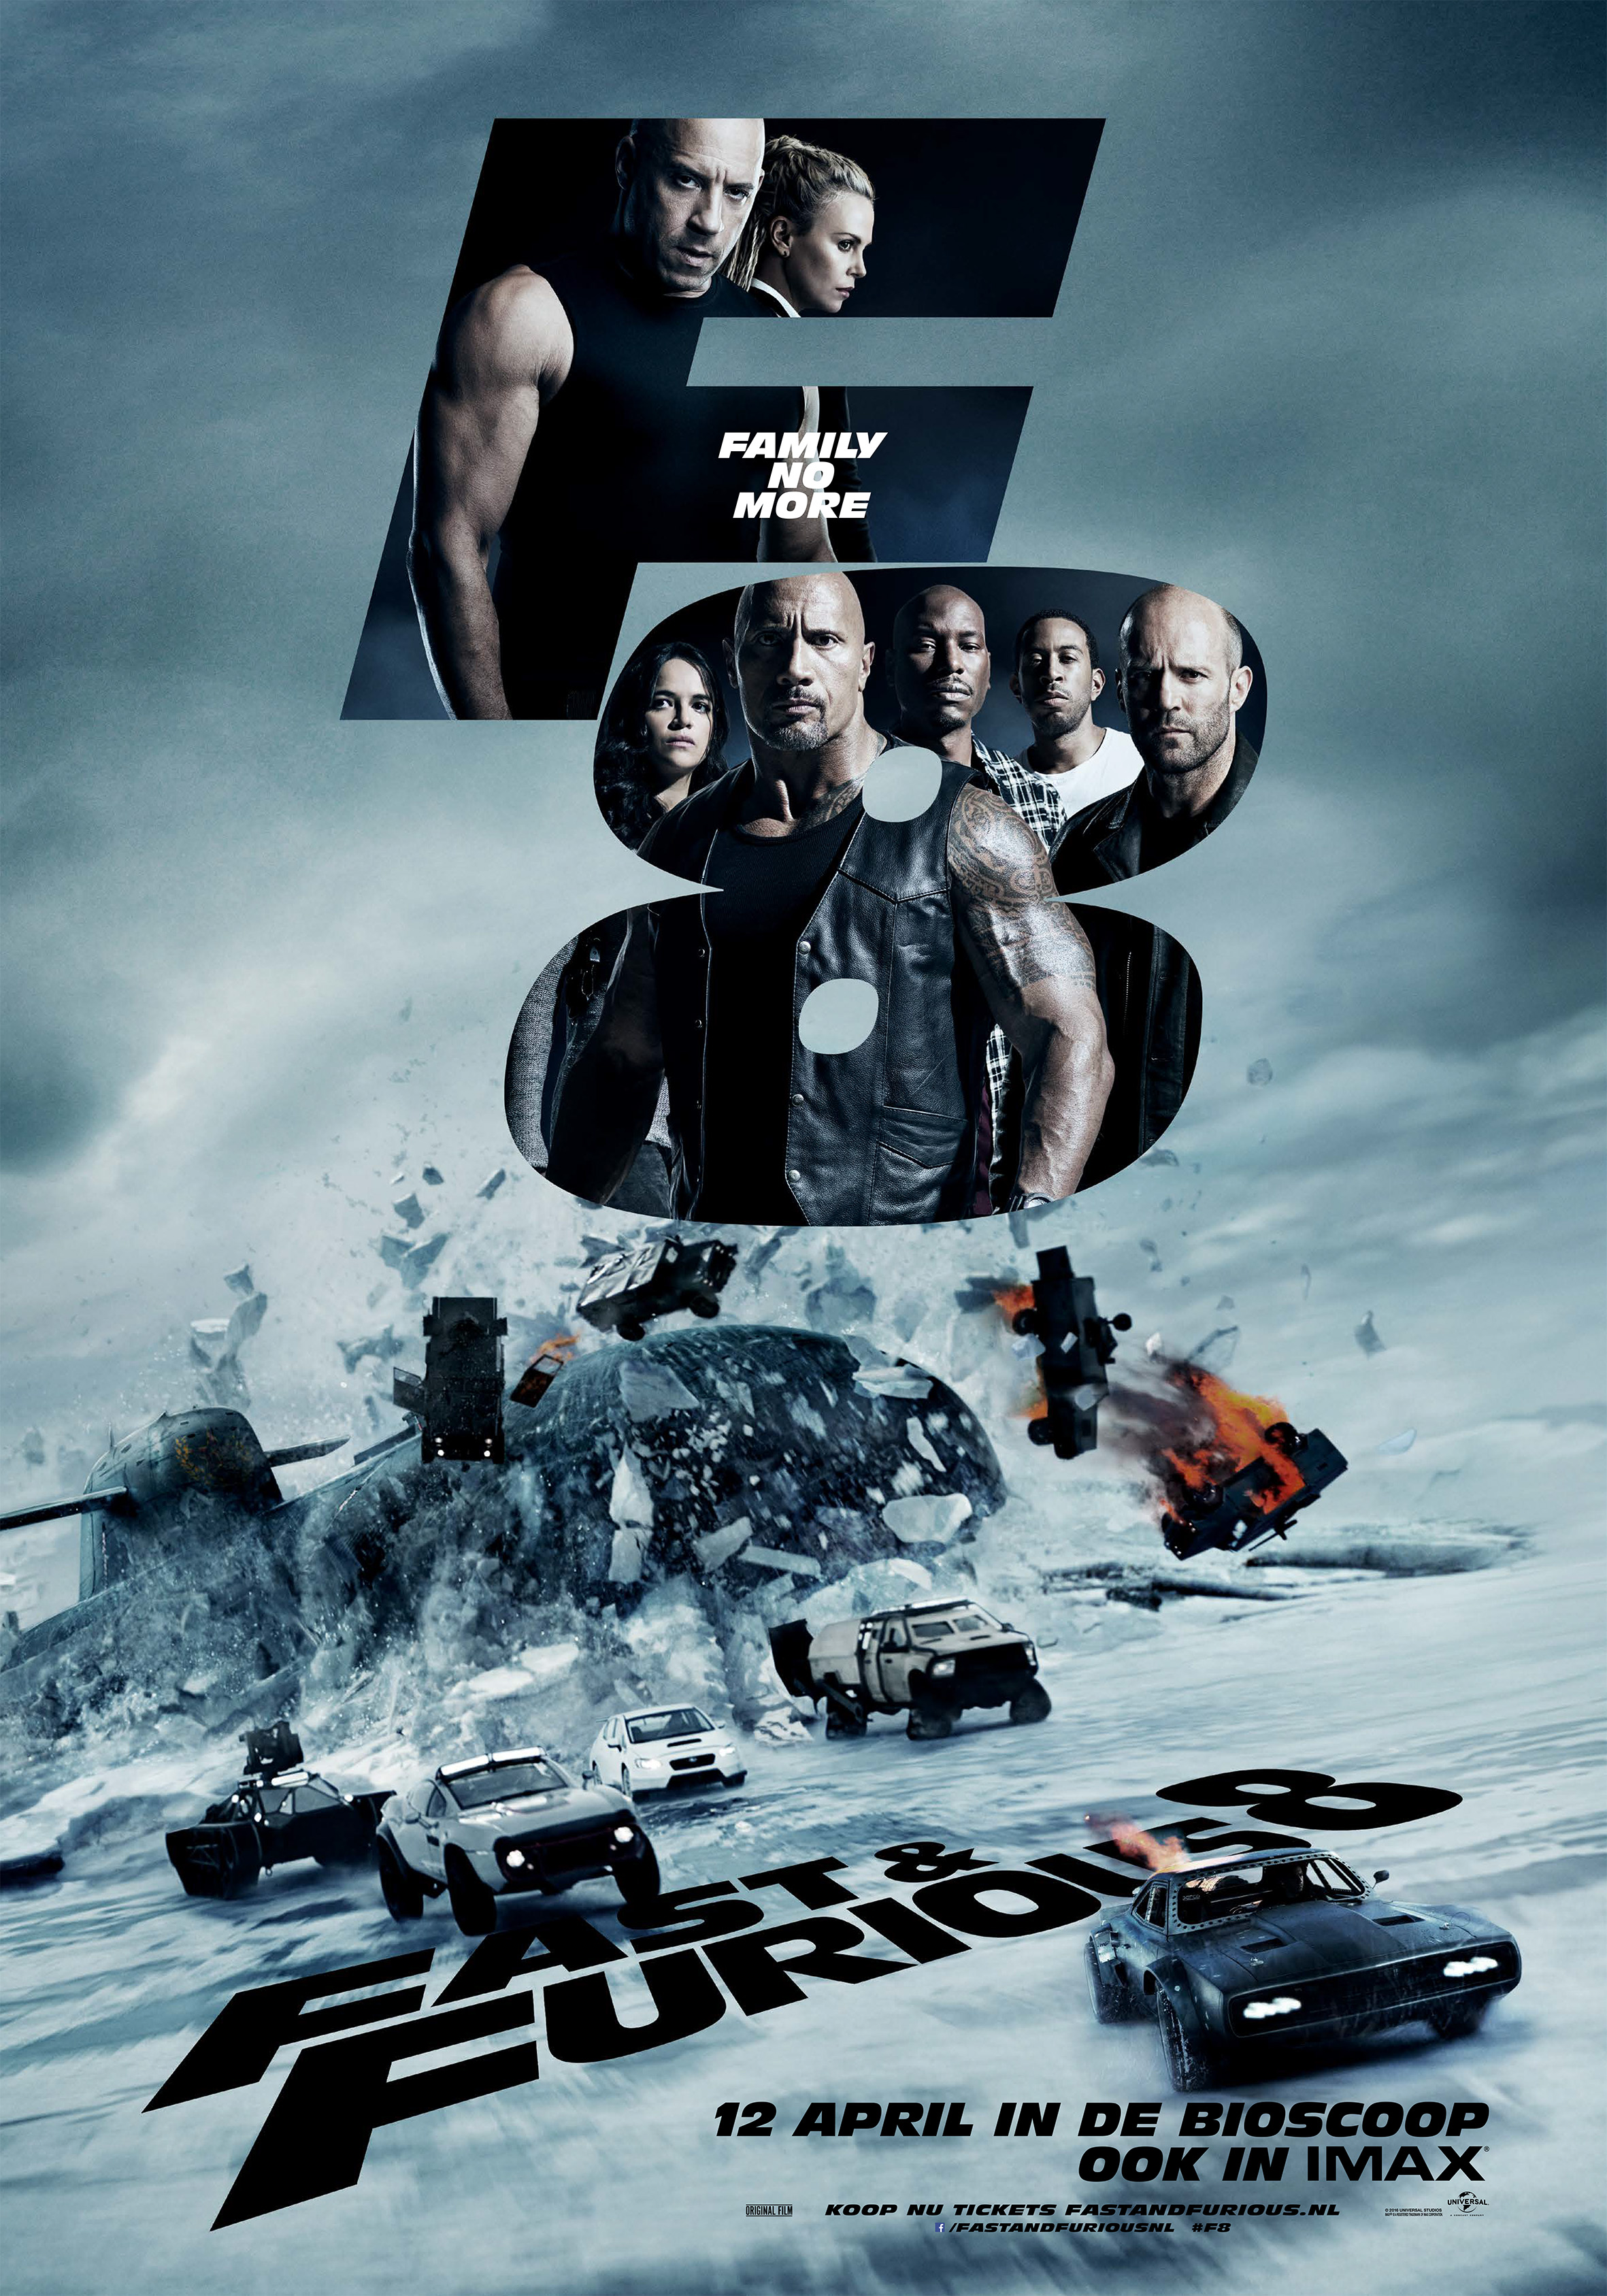 HD0683 - Fast and Furious 8 The Fate Of The Furious (2017) - Quá Nhanh Quá Nguy Hiểm 8